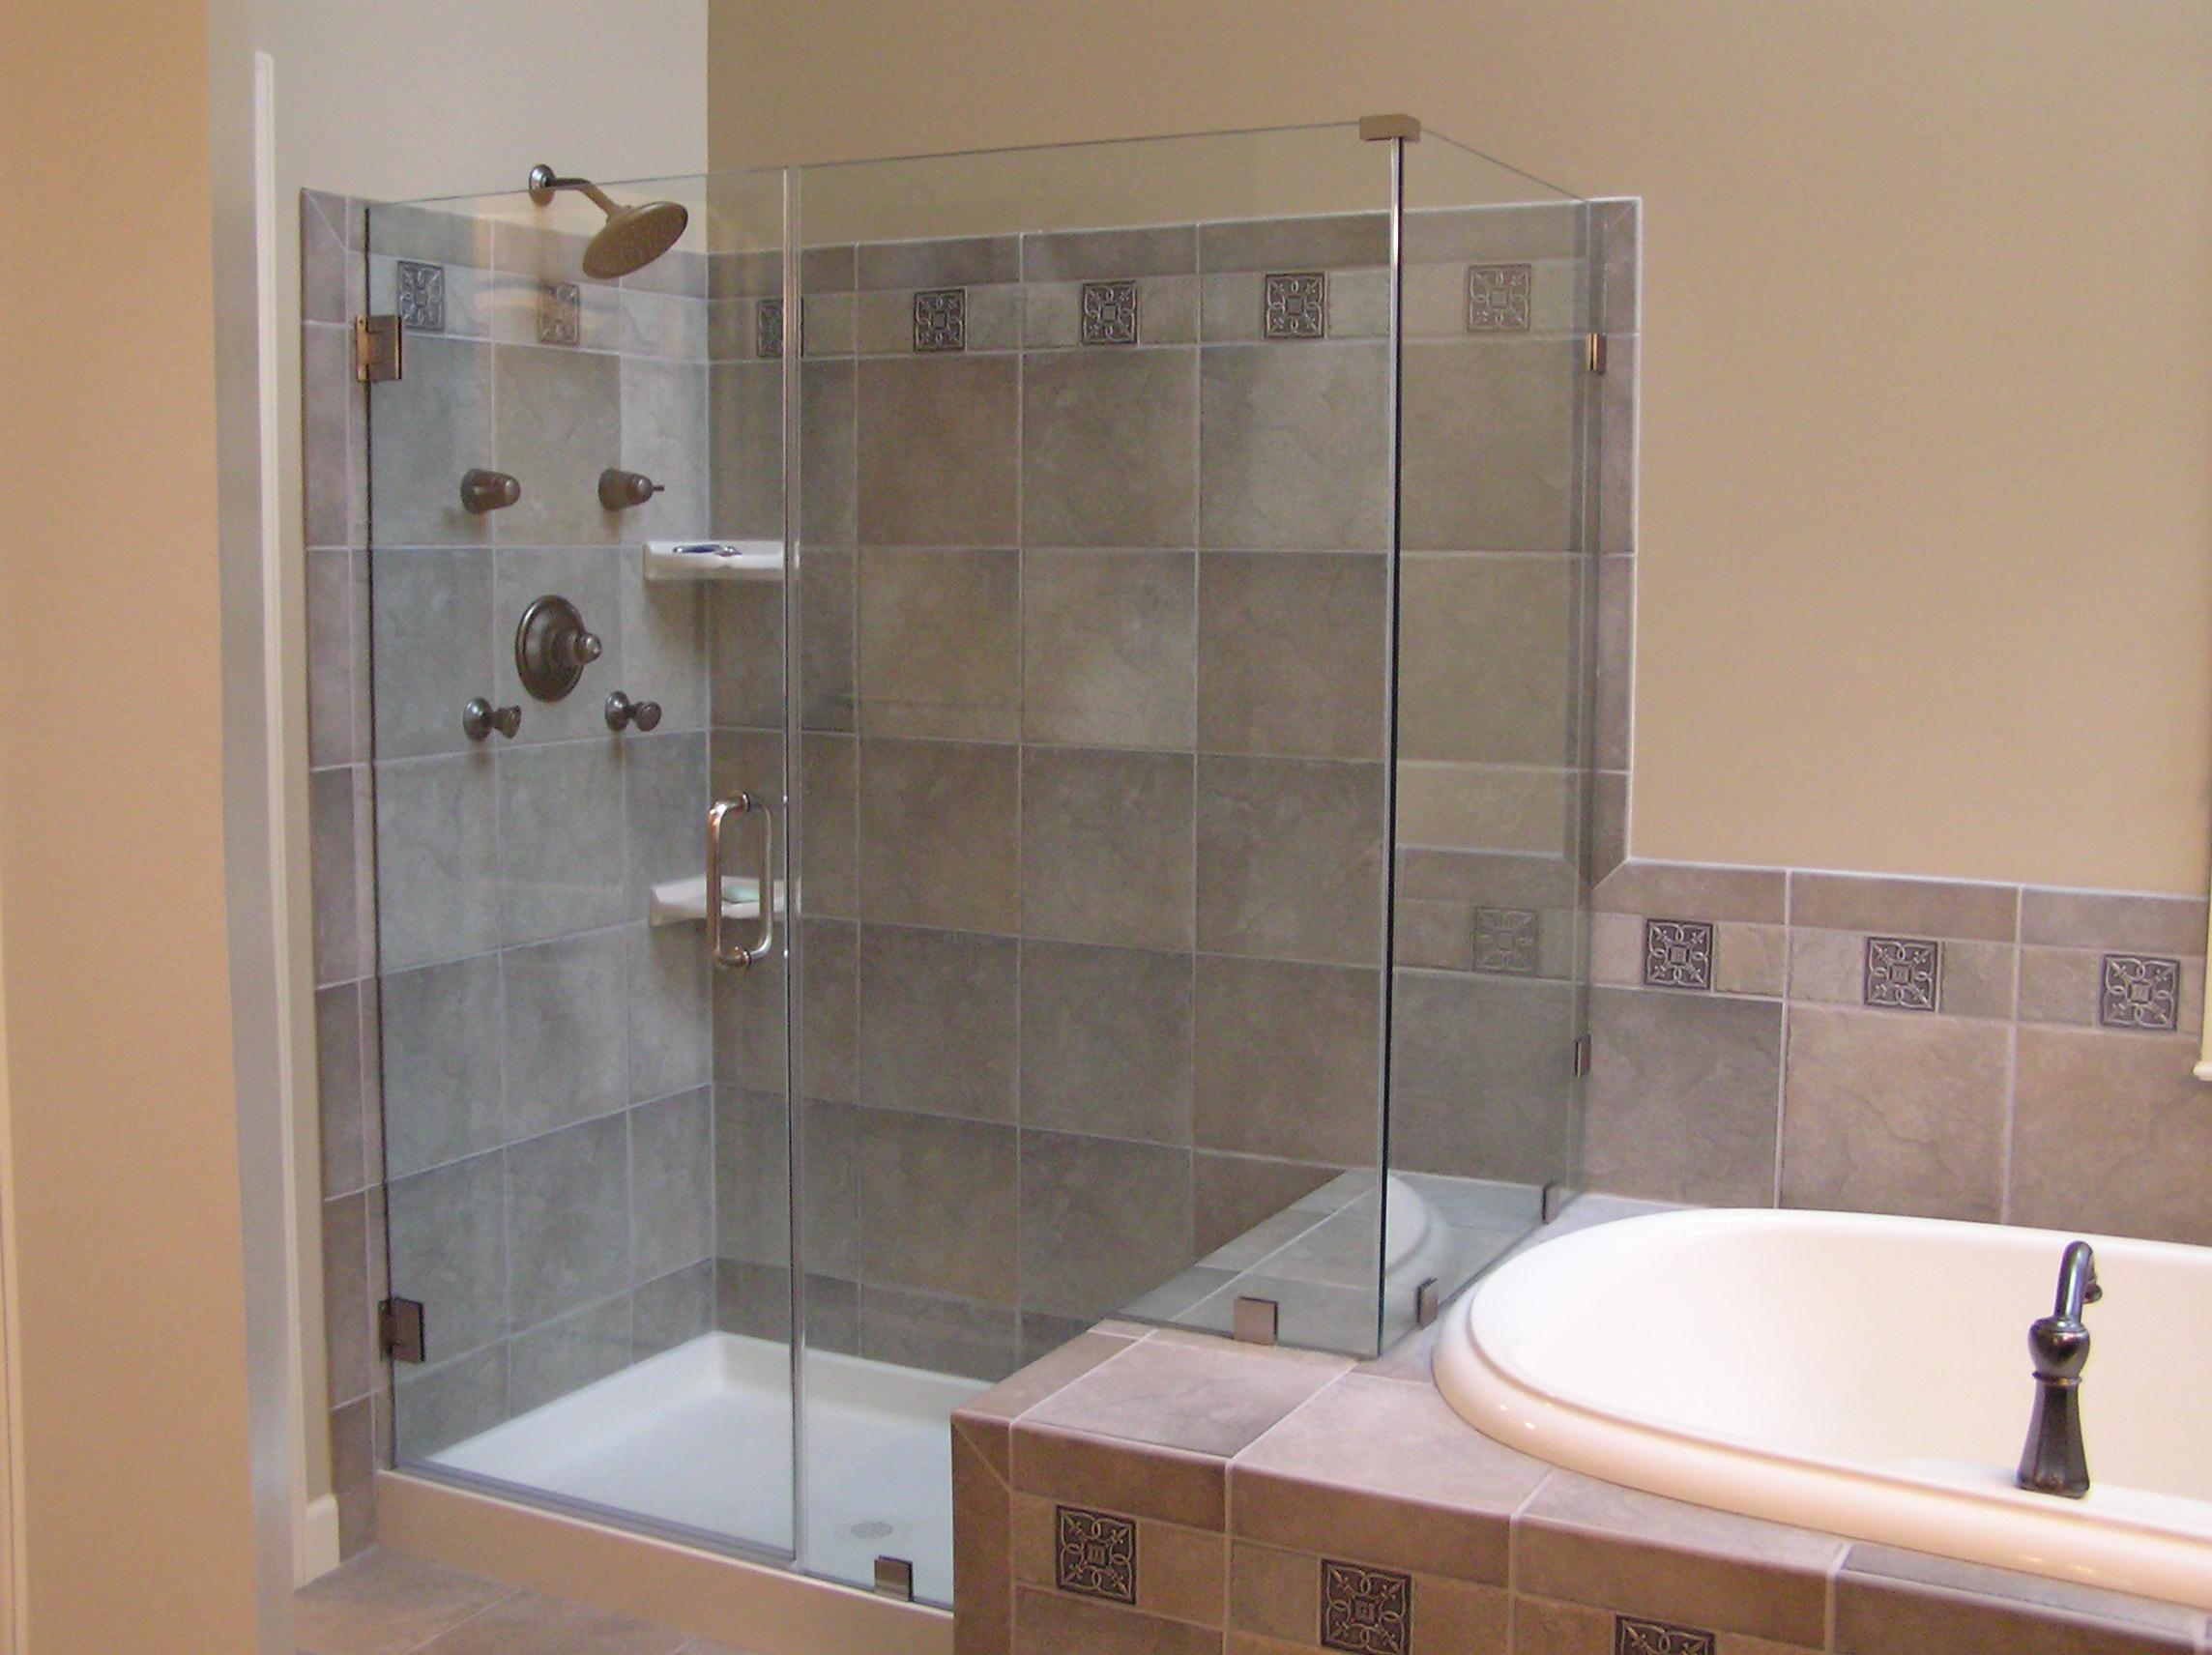 Remodel Bathroom Tub To Shower bathroom remodel delaware - home improvement contractors